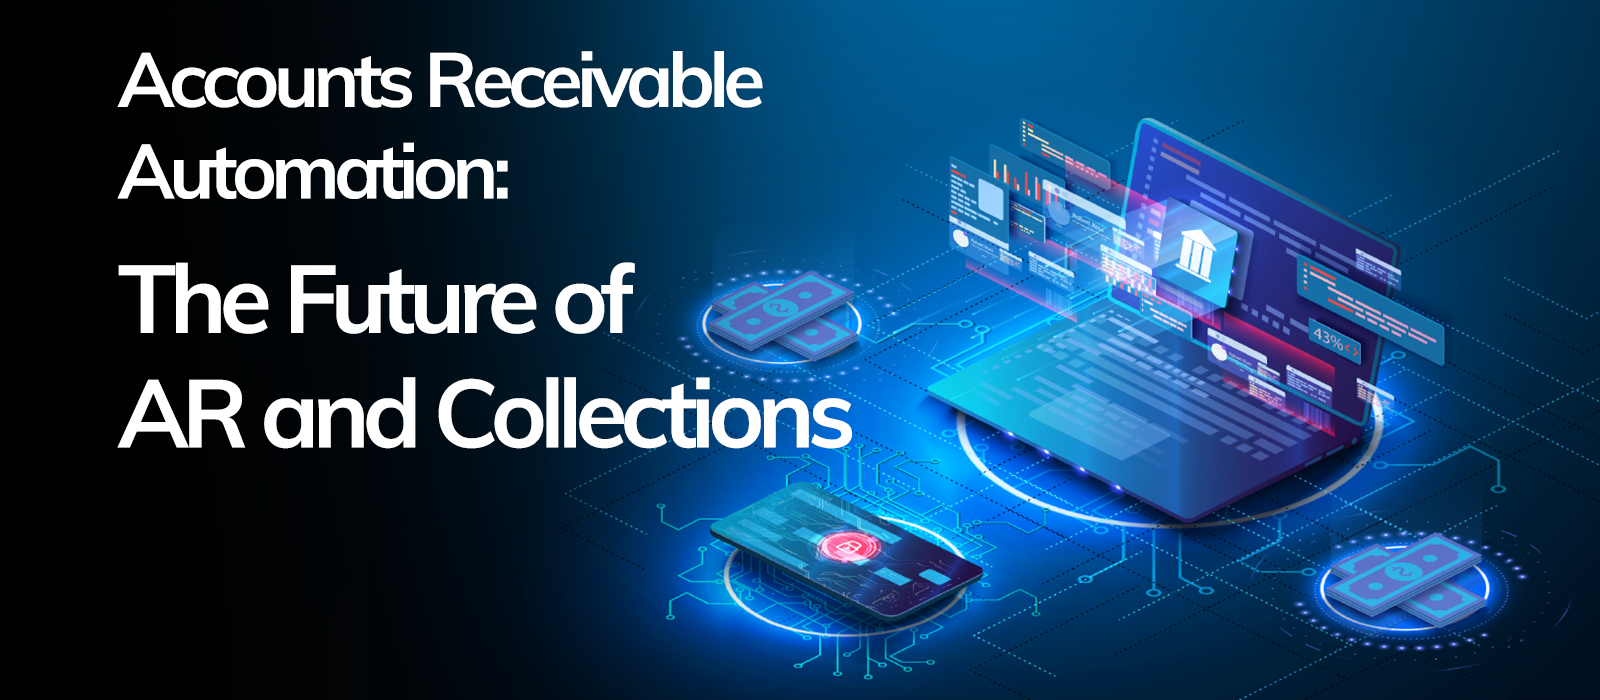 Accounts Receivable Automation: The Future of AR and Collections